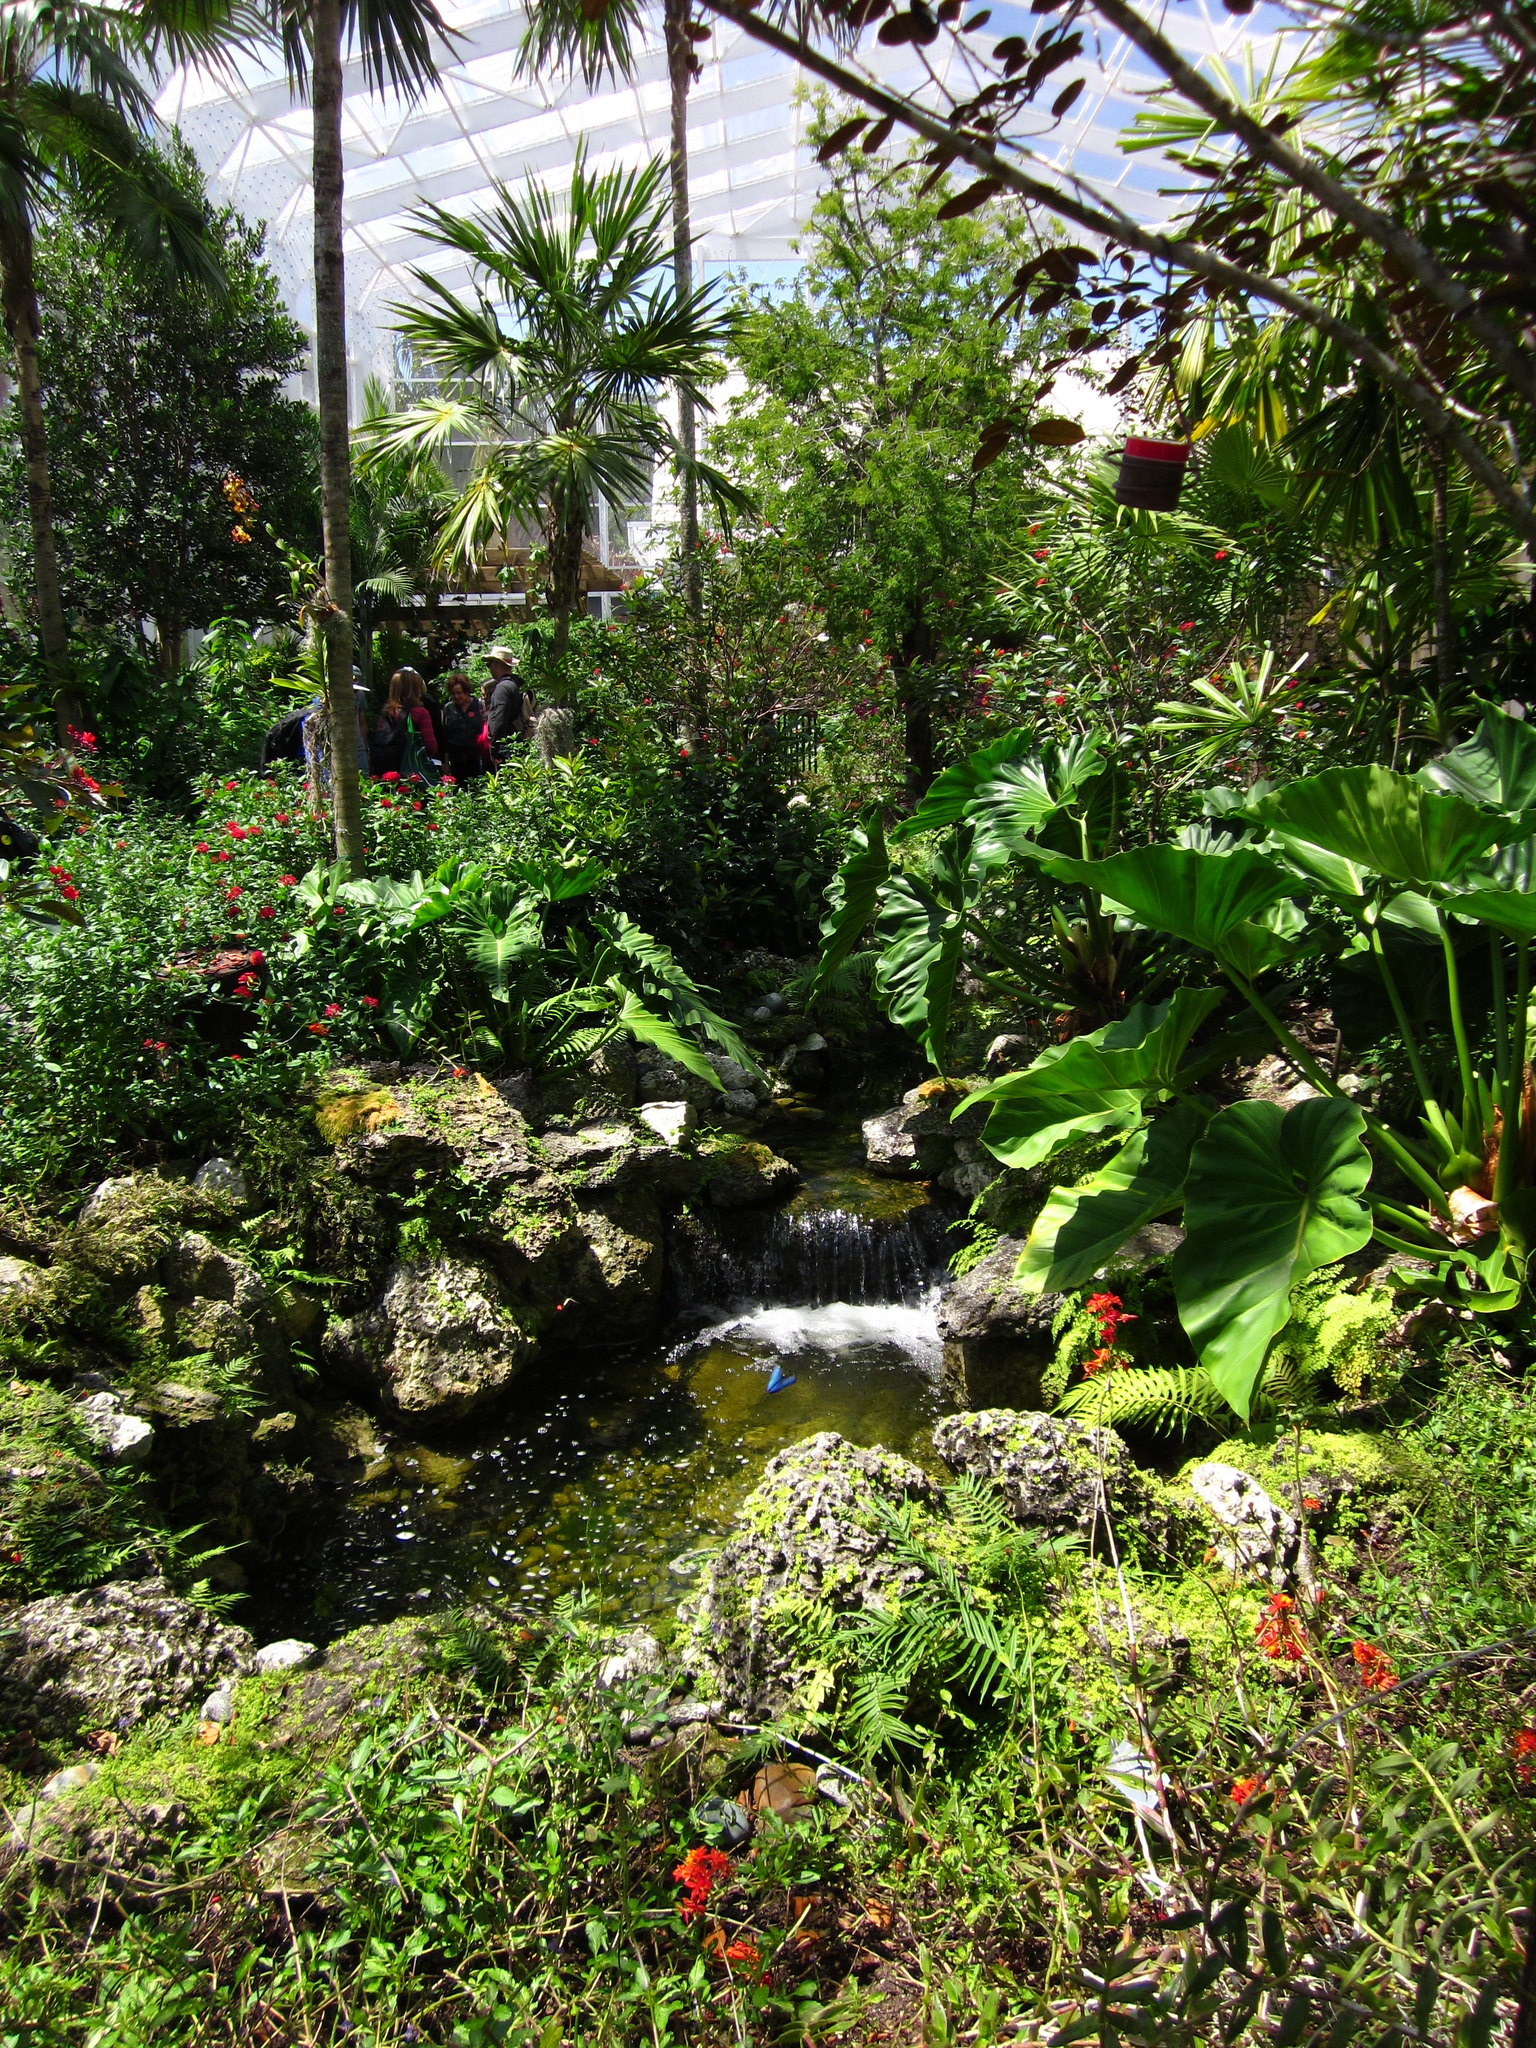 Amanda plante 39 s garden guide baby it 39 s hot outside at - Fairchild tropical botanic garden ...